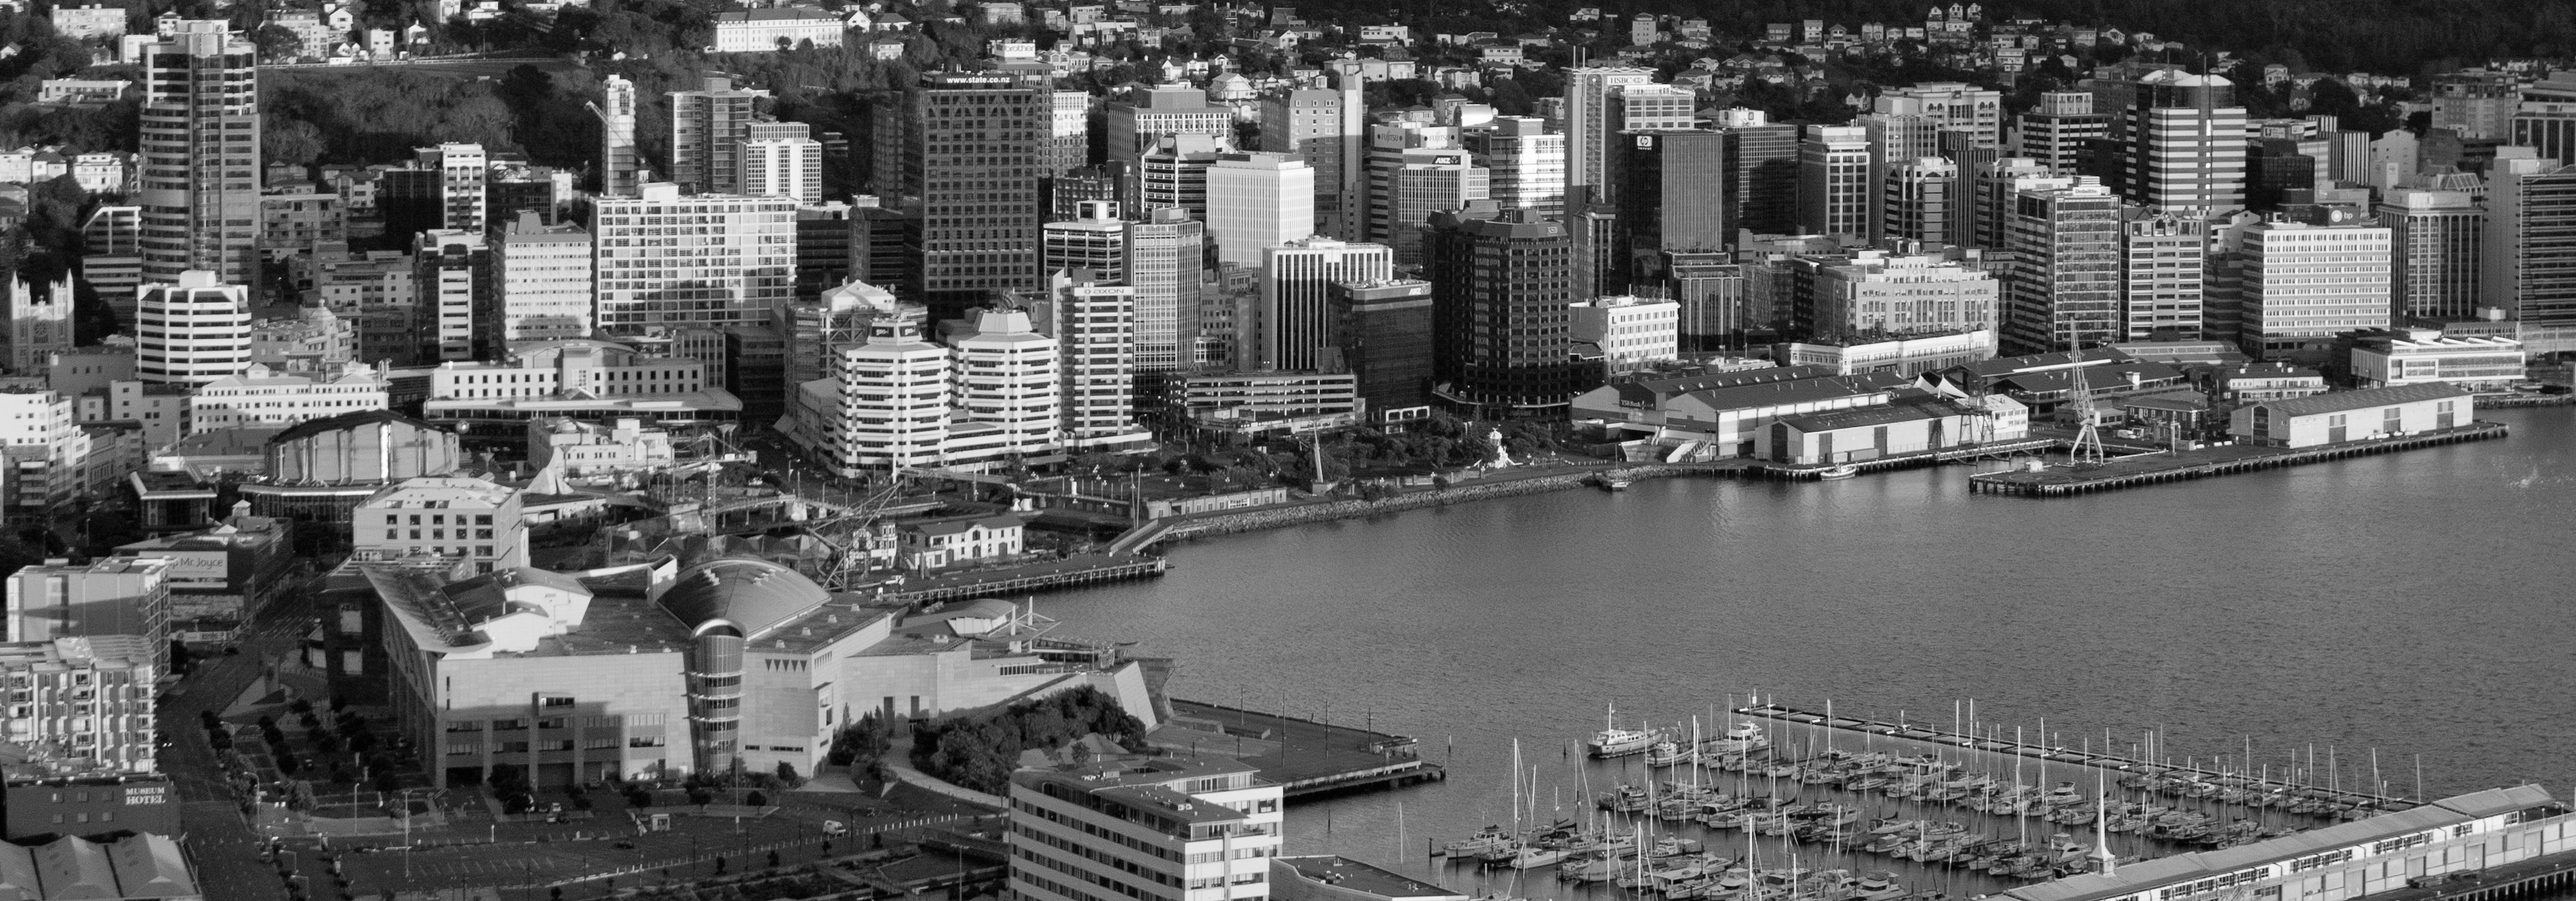 wellington-bw2